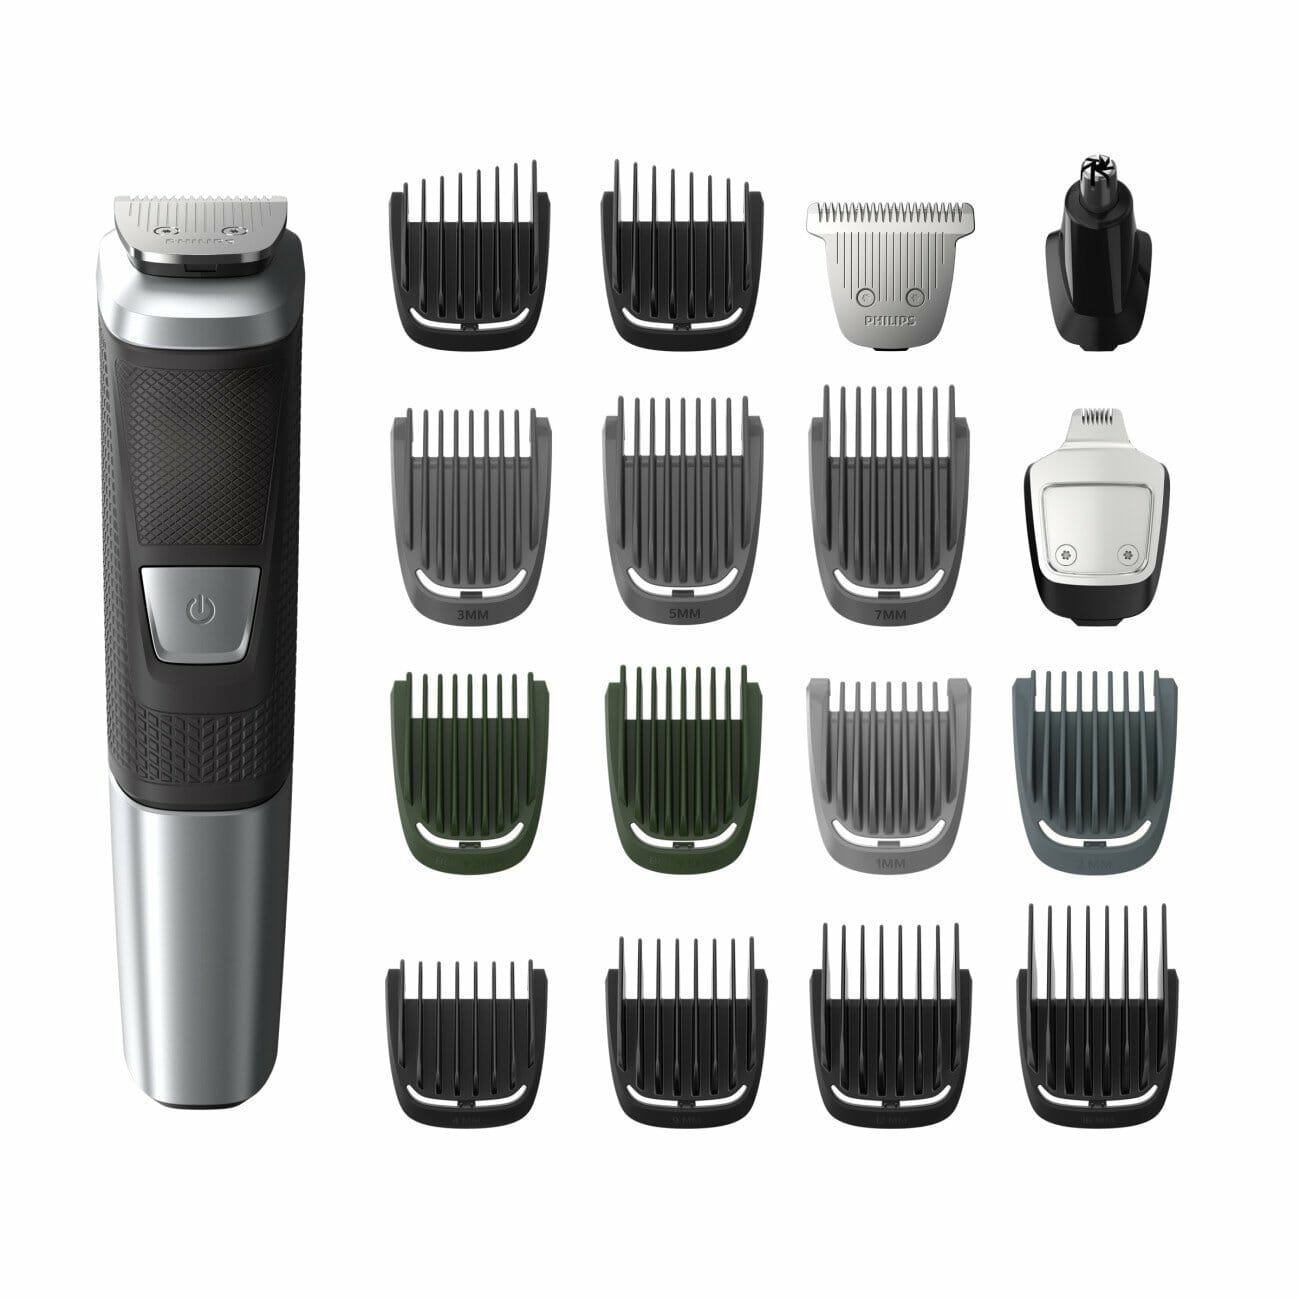 Philipps Online Shop Philips Norelco Multigroom 5000 With 18 Attachments